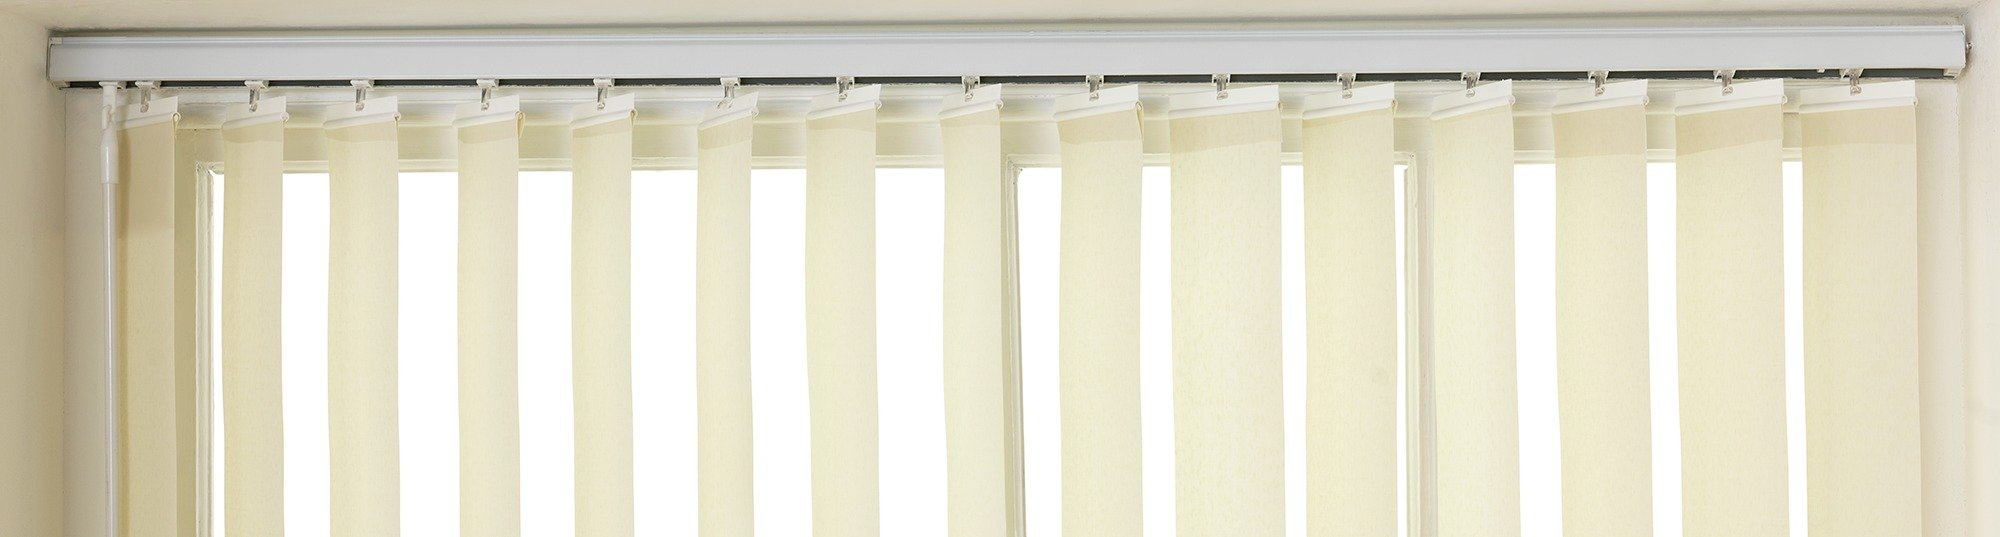 Argos Home Vertical Blind Headrail - 8ft